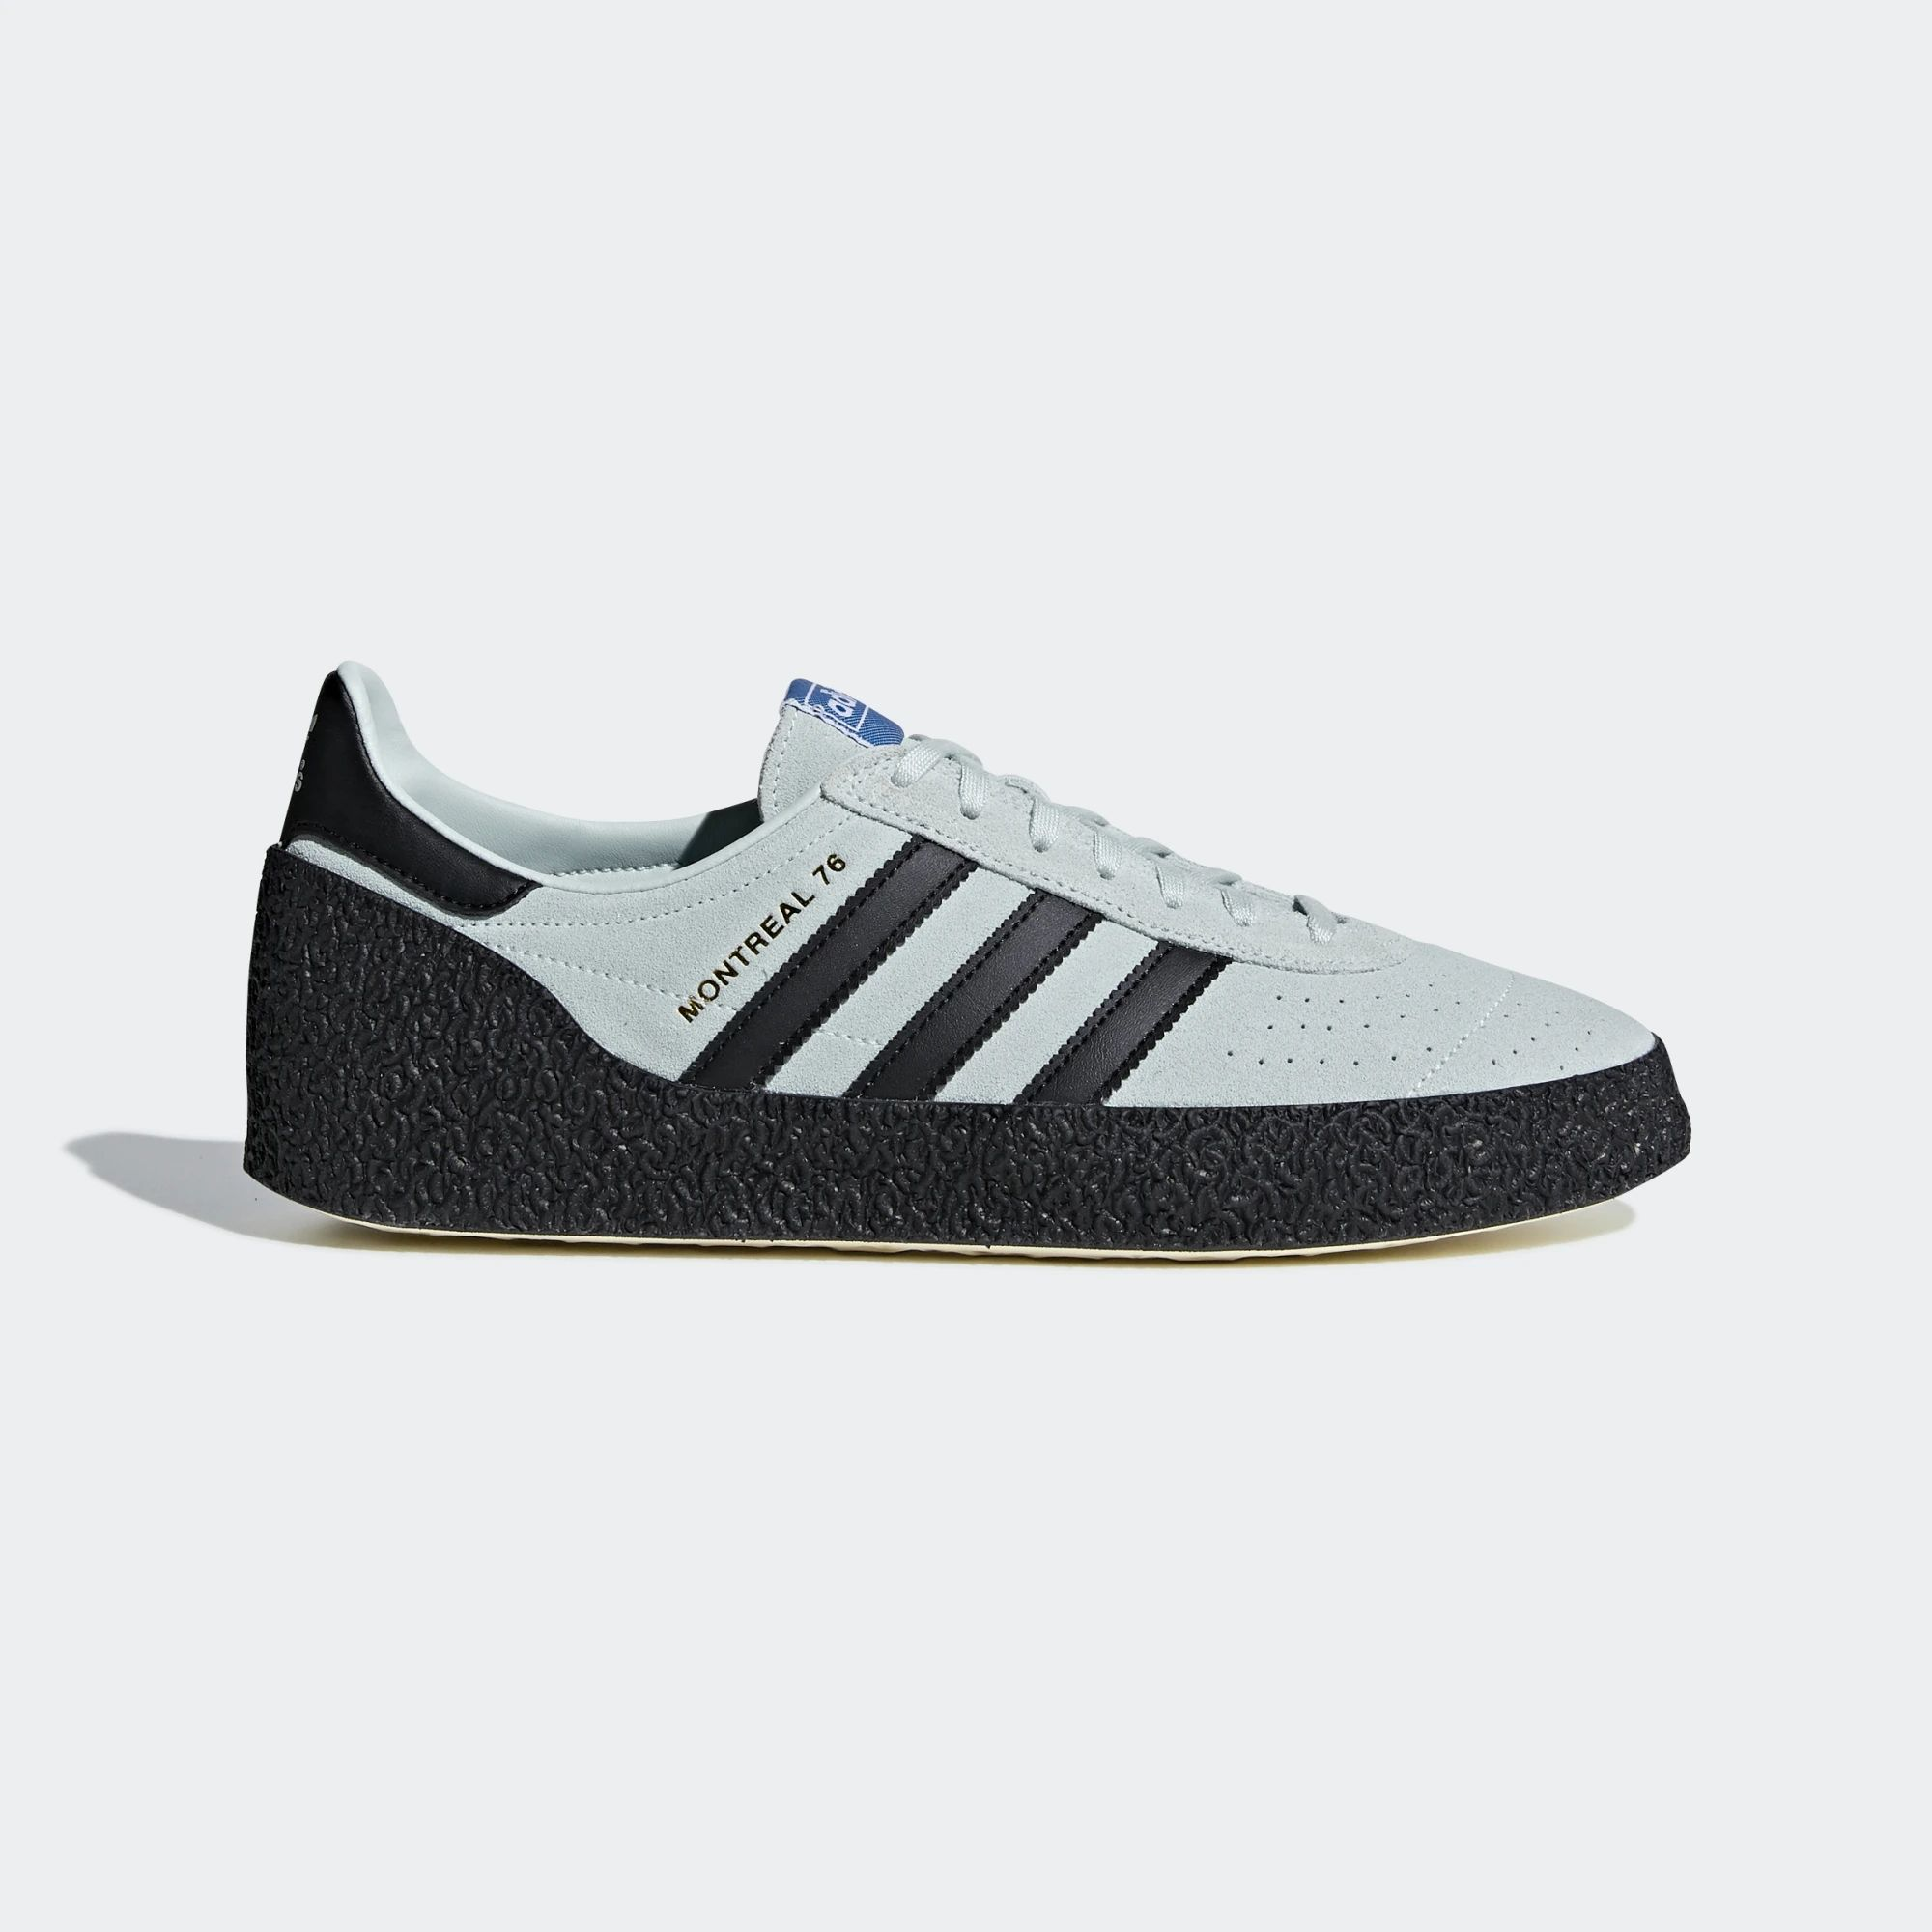 Adidas Montreal 76 Shoes - Vapour Green / Core Black / Cream White